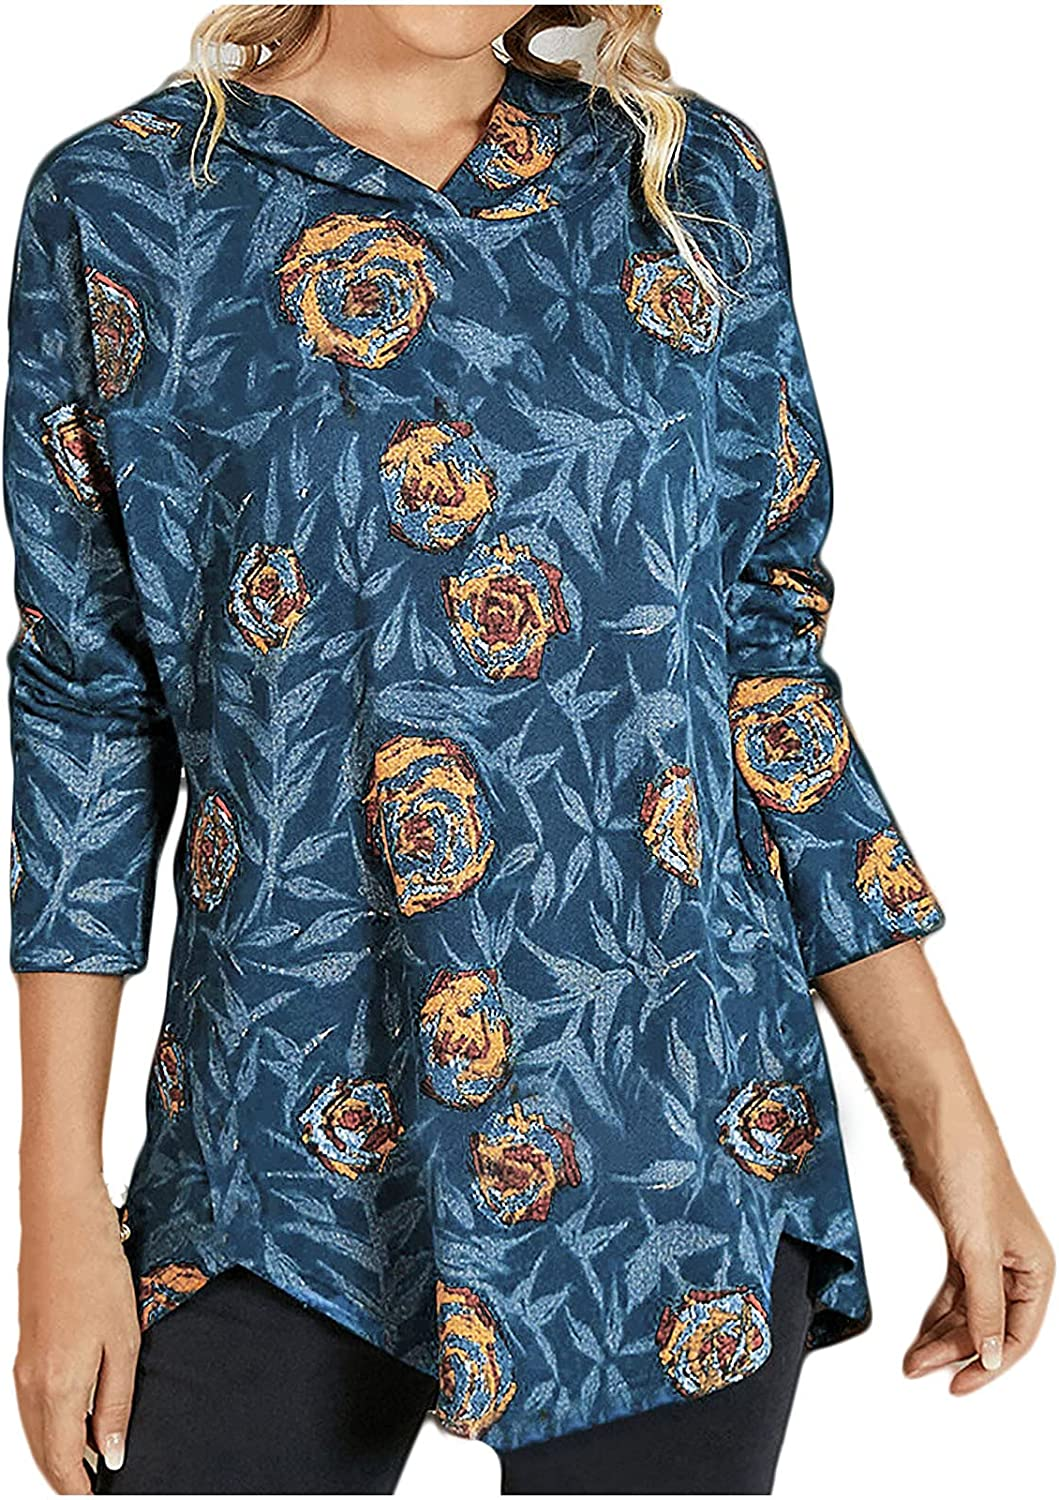 Women's Hooded Vintage Print Long Sleeve Casual Loose Tunic Tops Comfy Soft Blouses Autumn Fashion Shirts